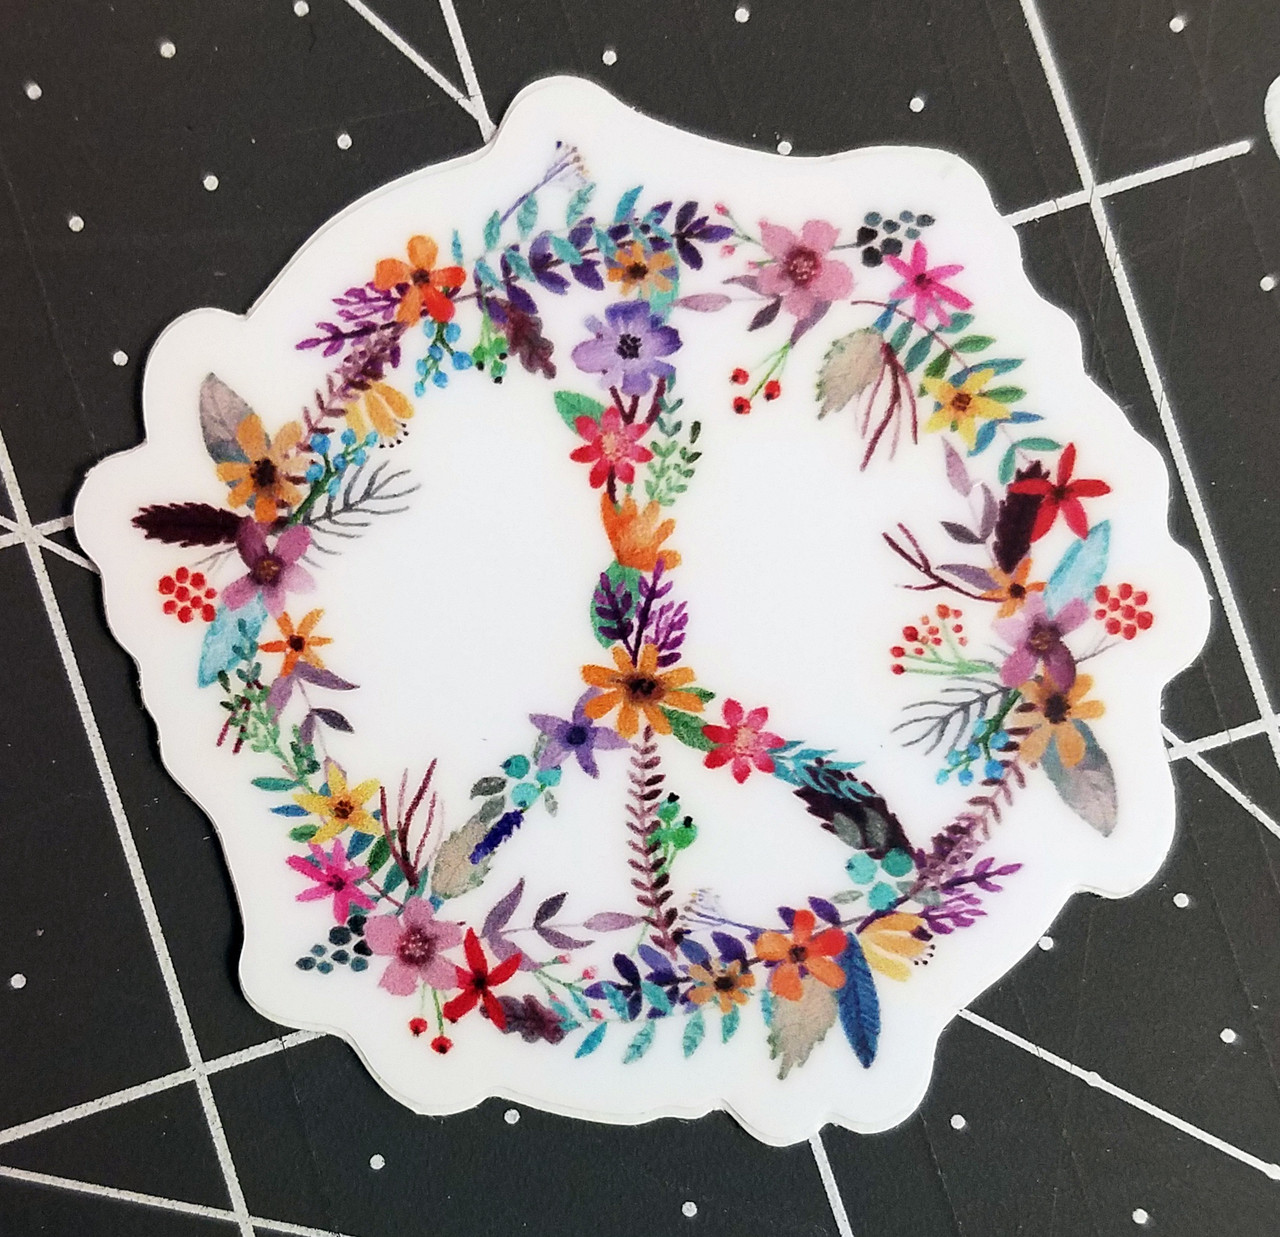 """Set of 5 PEACE SIGN of FLOWERS 2"""" Die Cut Vinyl Decals Stickers - Floral Gypsy Hippie Decals - 5-pack"""